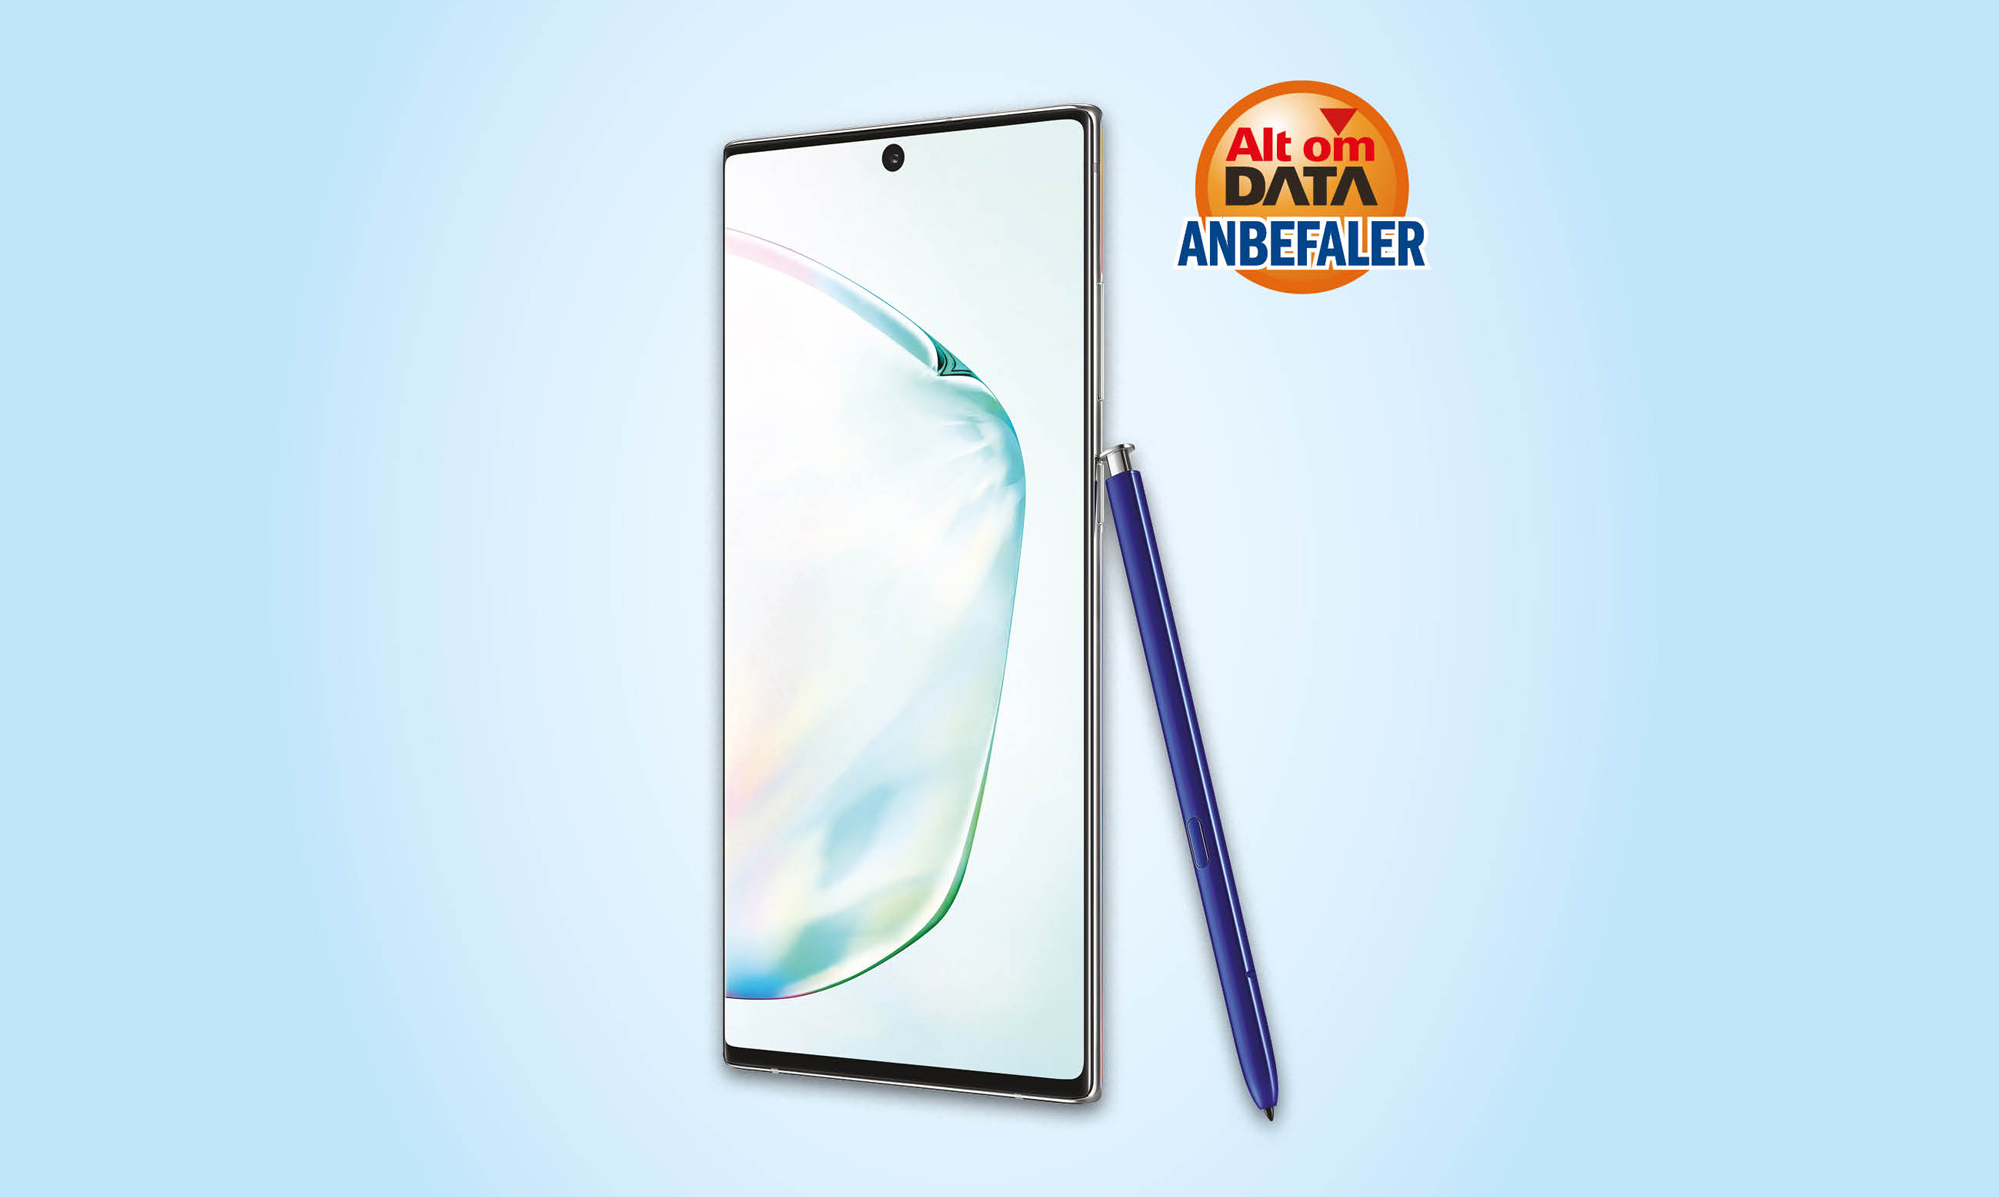 Samsung Galaxy Note10+ [TEST]: Samsungs monstermobil har det hele